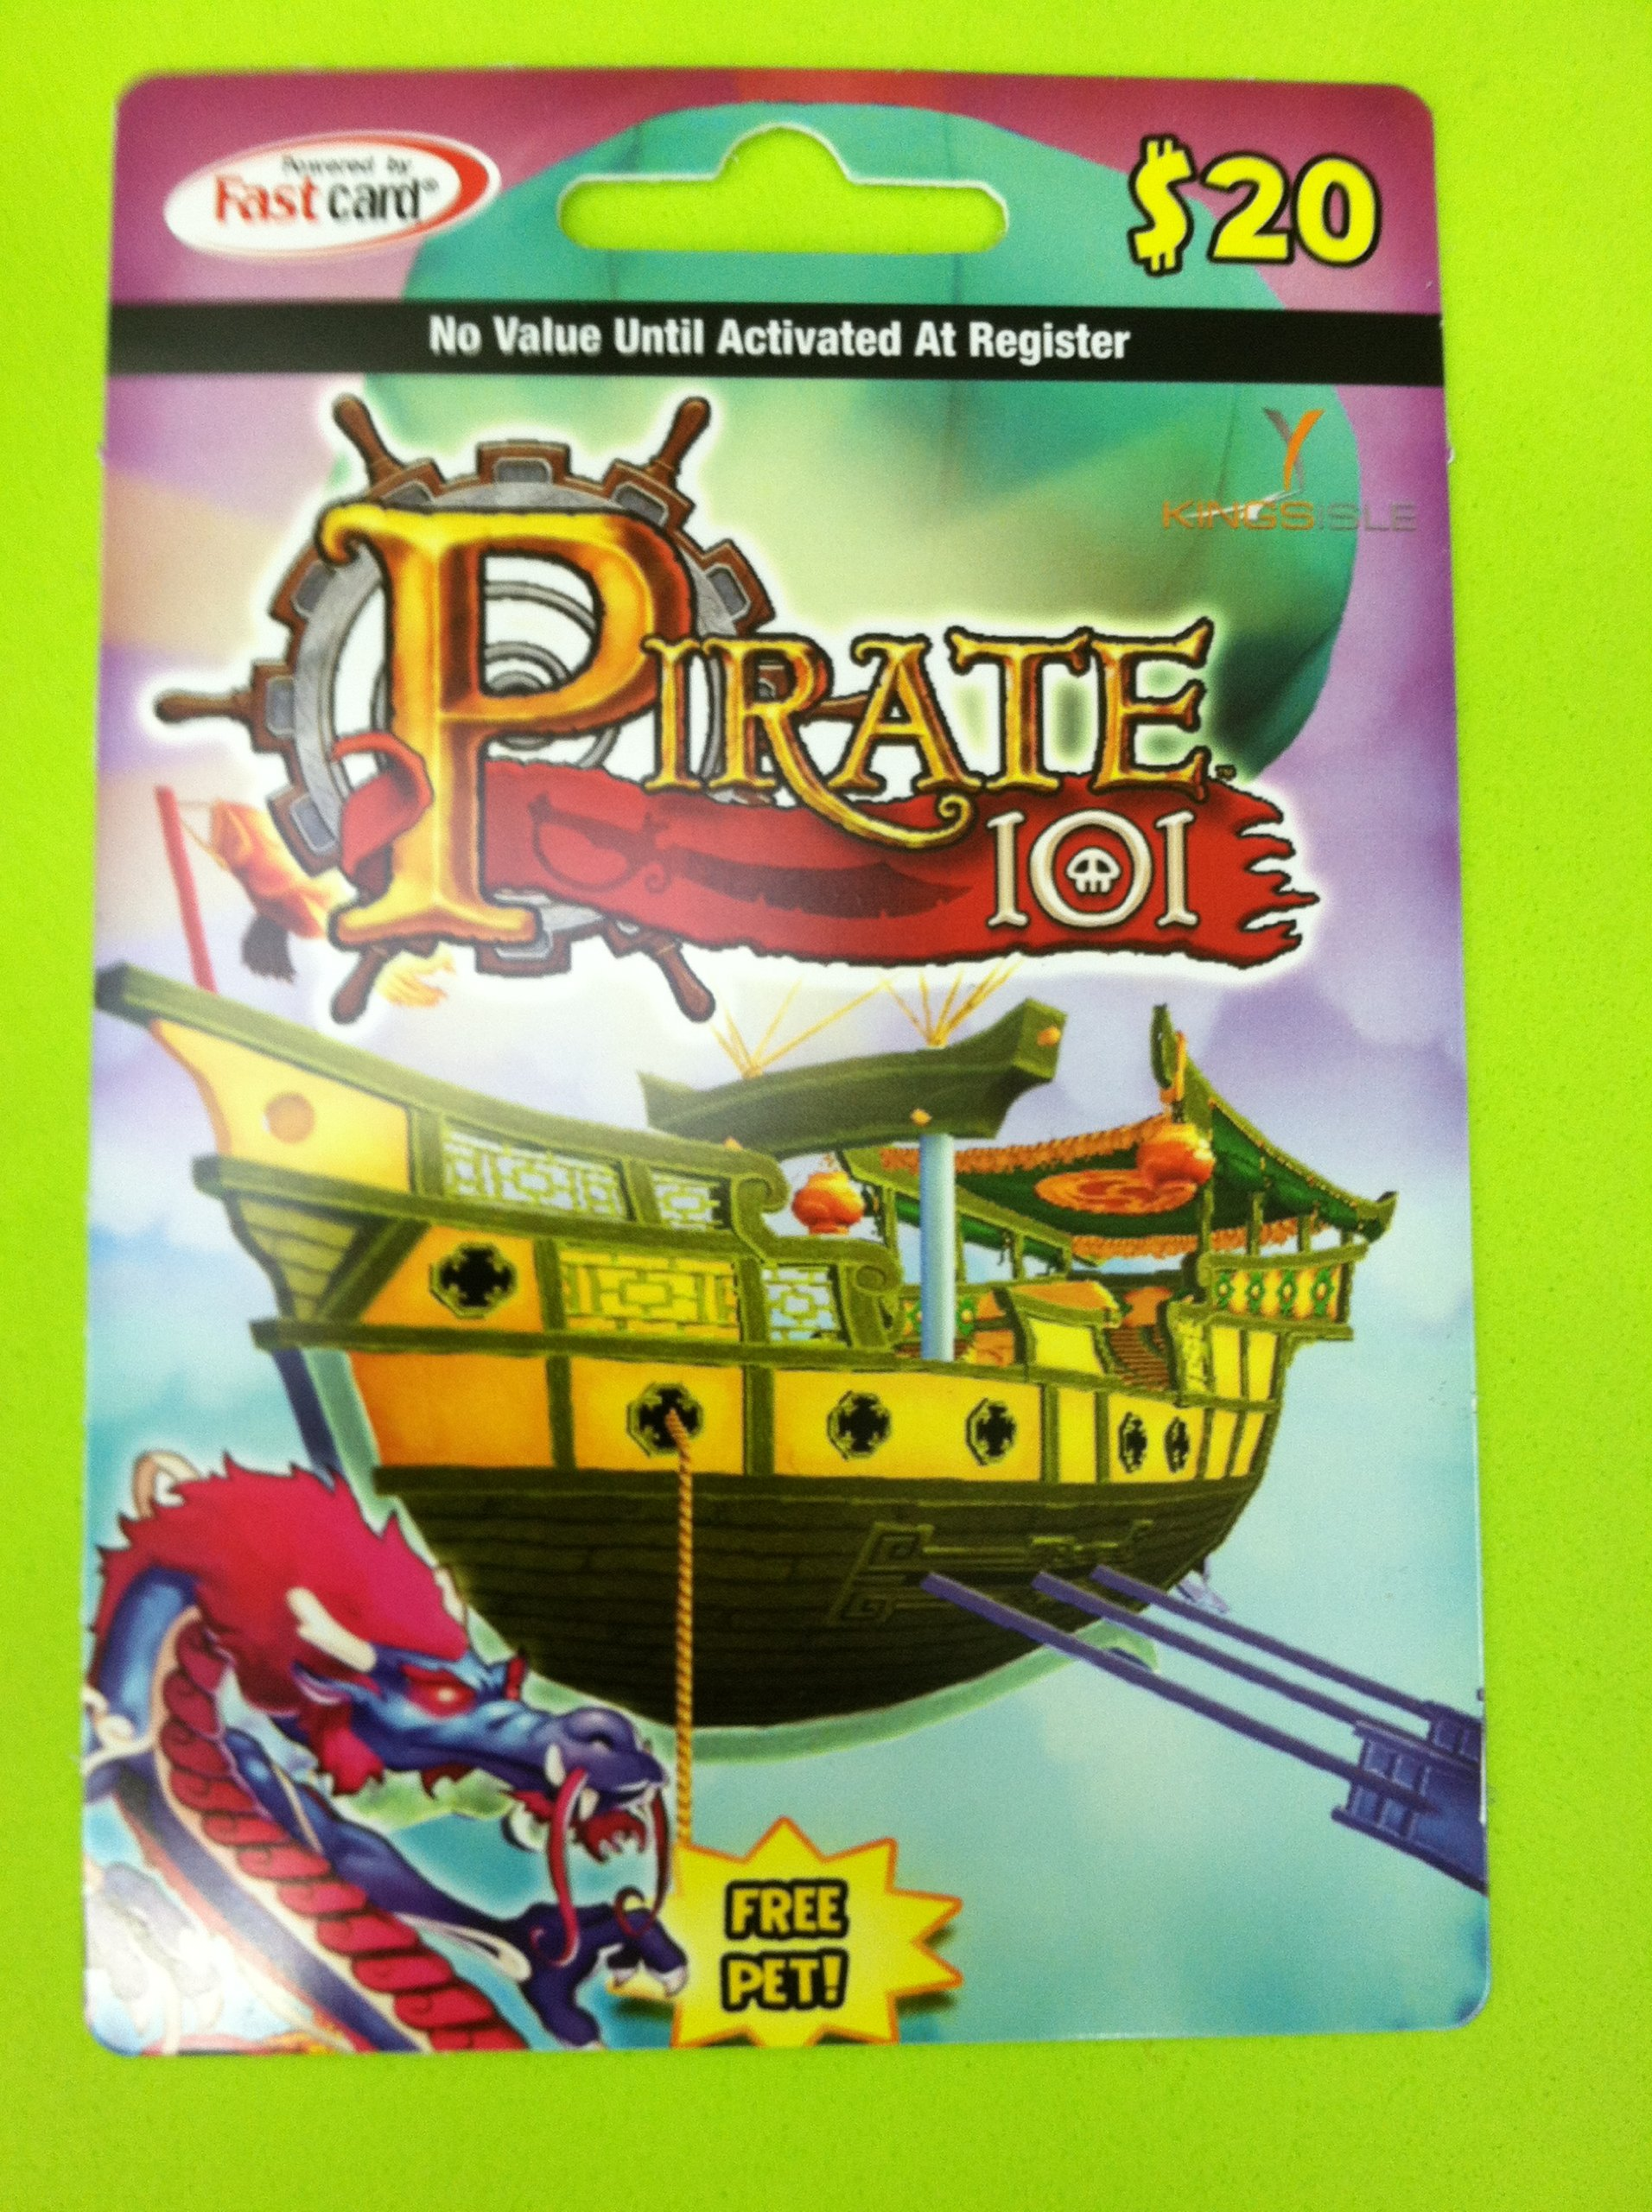 Amazon.com: Pirate101 2-month Online Game Membership Card with Free ...